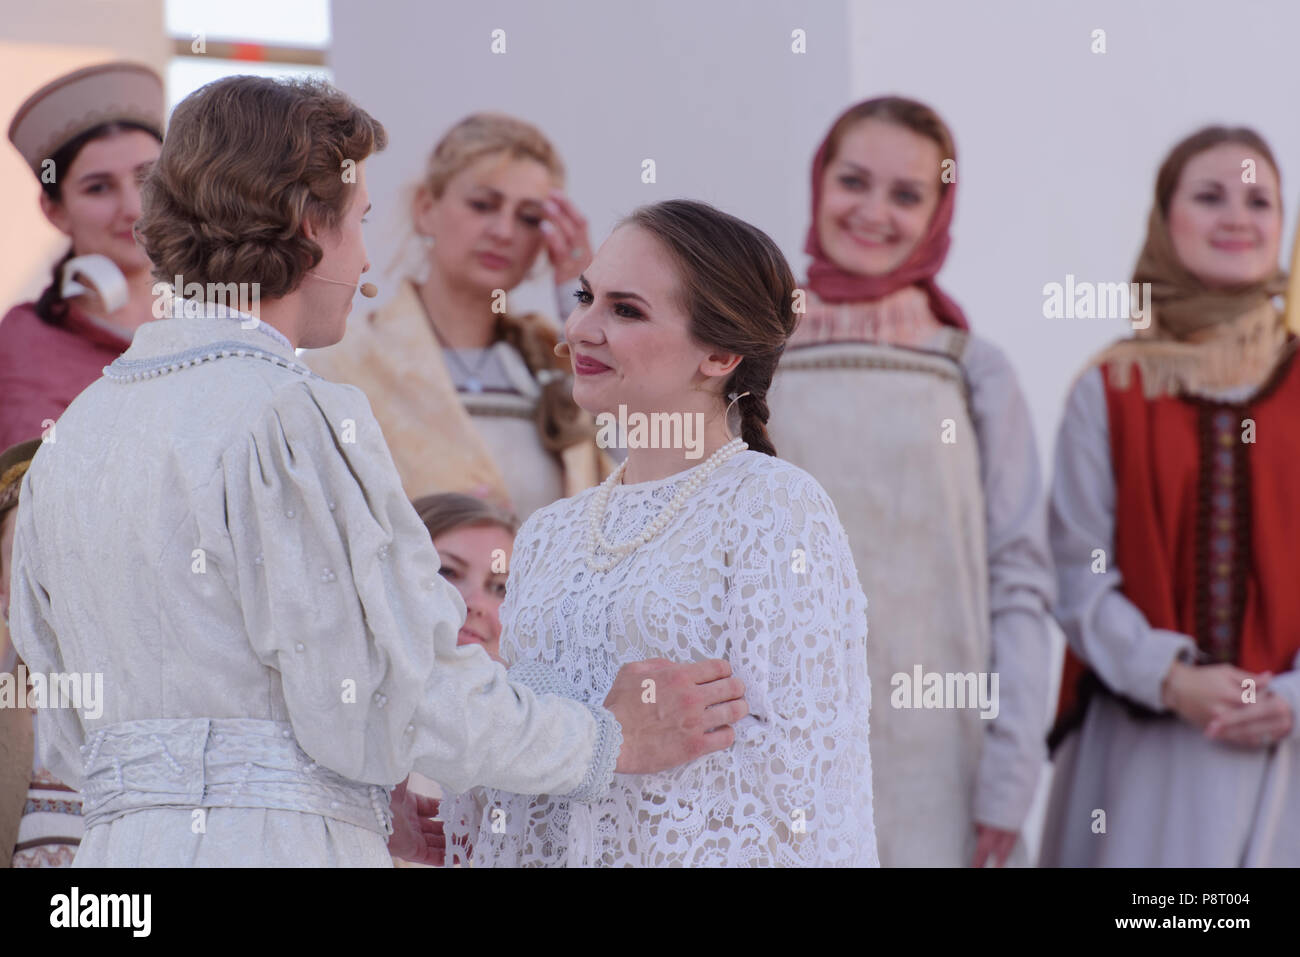 St. Petersburg, Russia - July 12, 2018: Olga Cheremnykh as Marfa (right) and Ilya Selivanov as Lykov in the opera The Tsar's Bride of N. Rimsky-Korsak - Stock Image